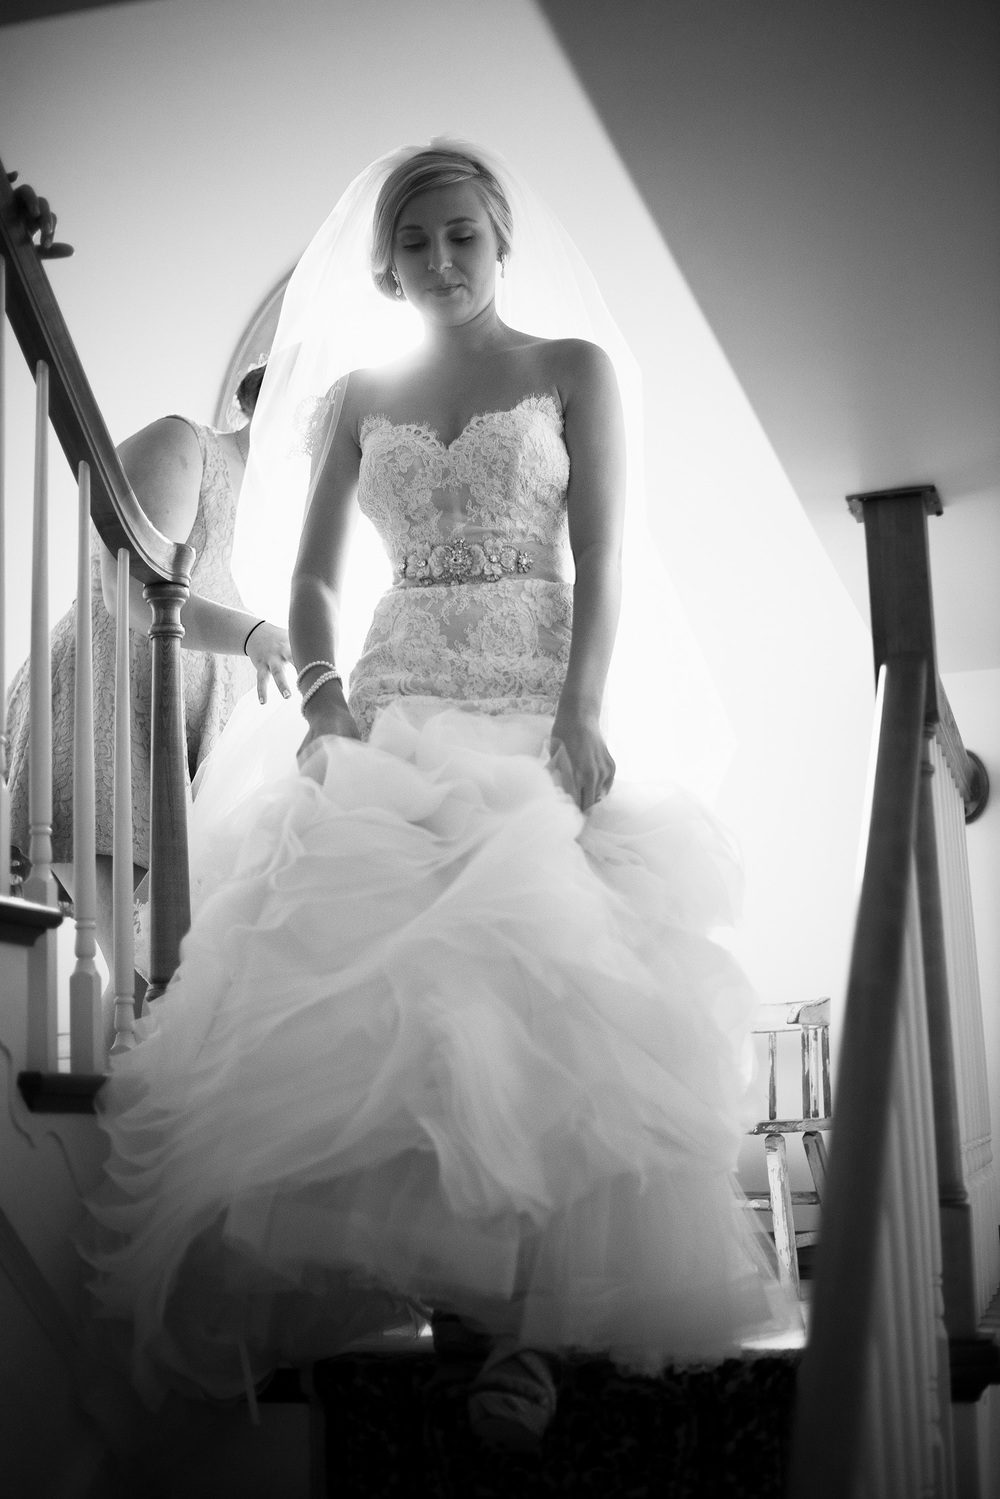 bride coming down stairs dress window light bw